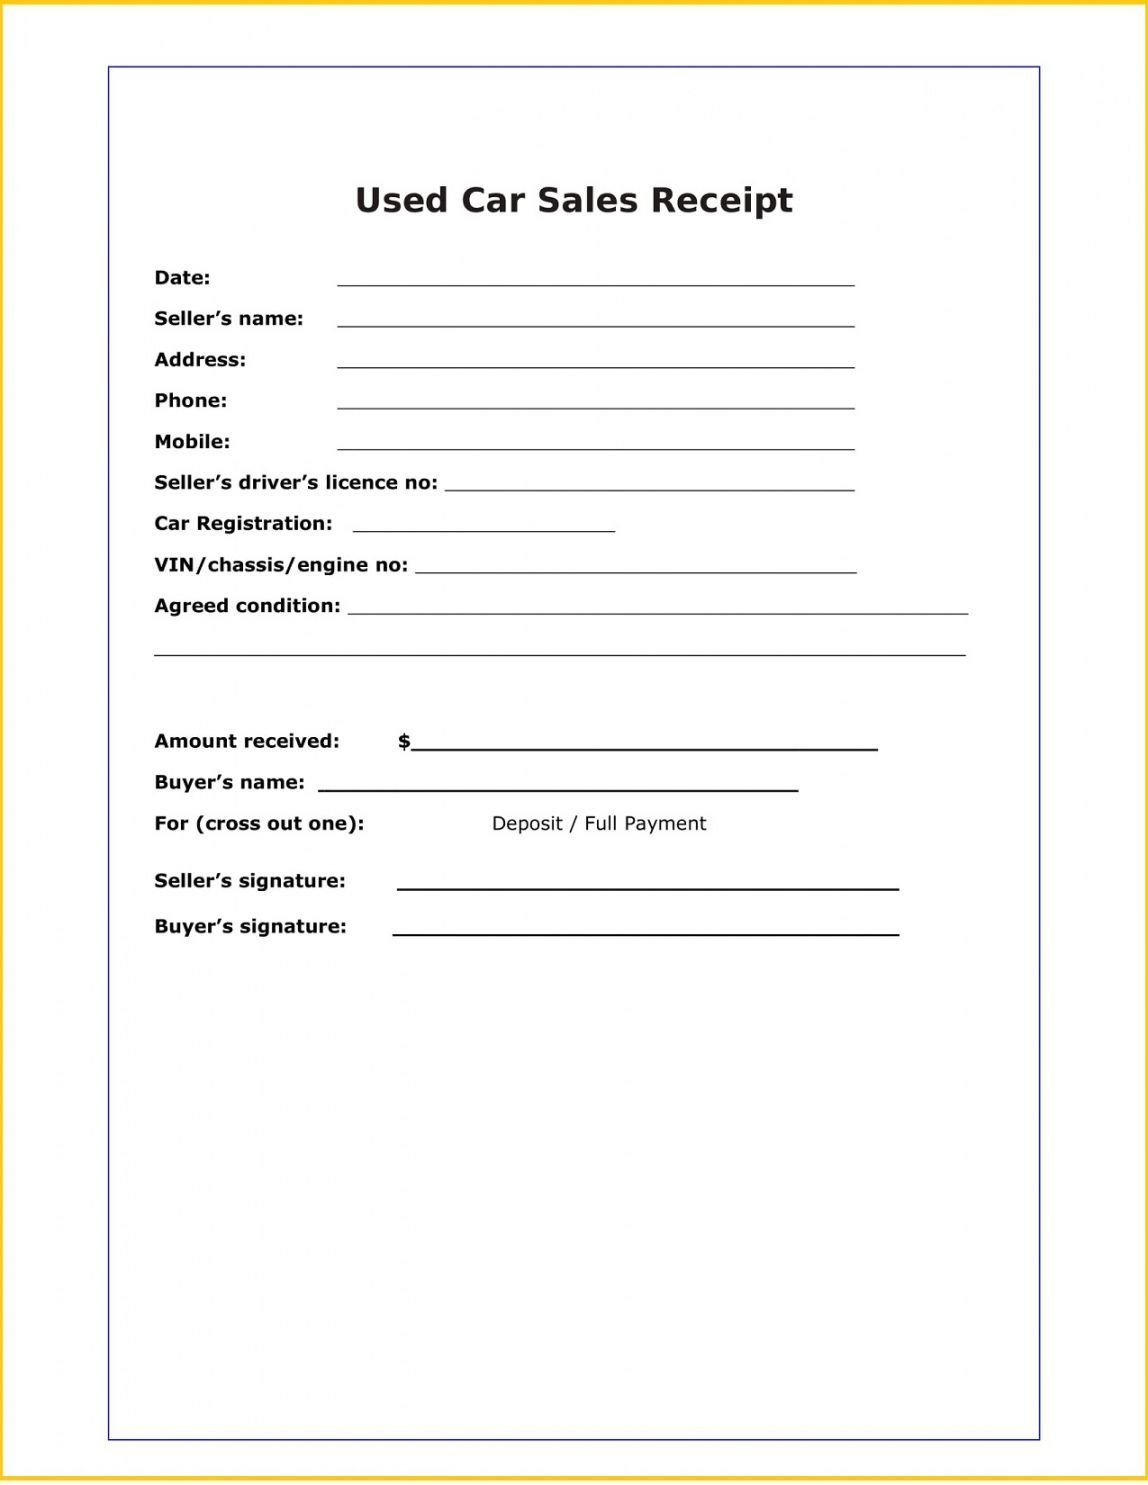 Browse Our Printable Used Car Sales Receipt Template Receipt Template Cars For Sale Receipt